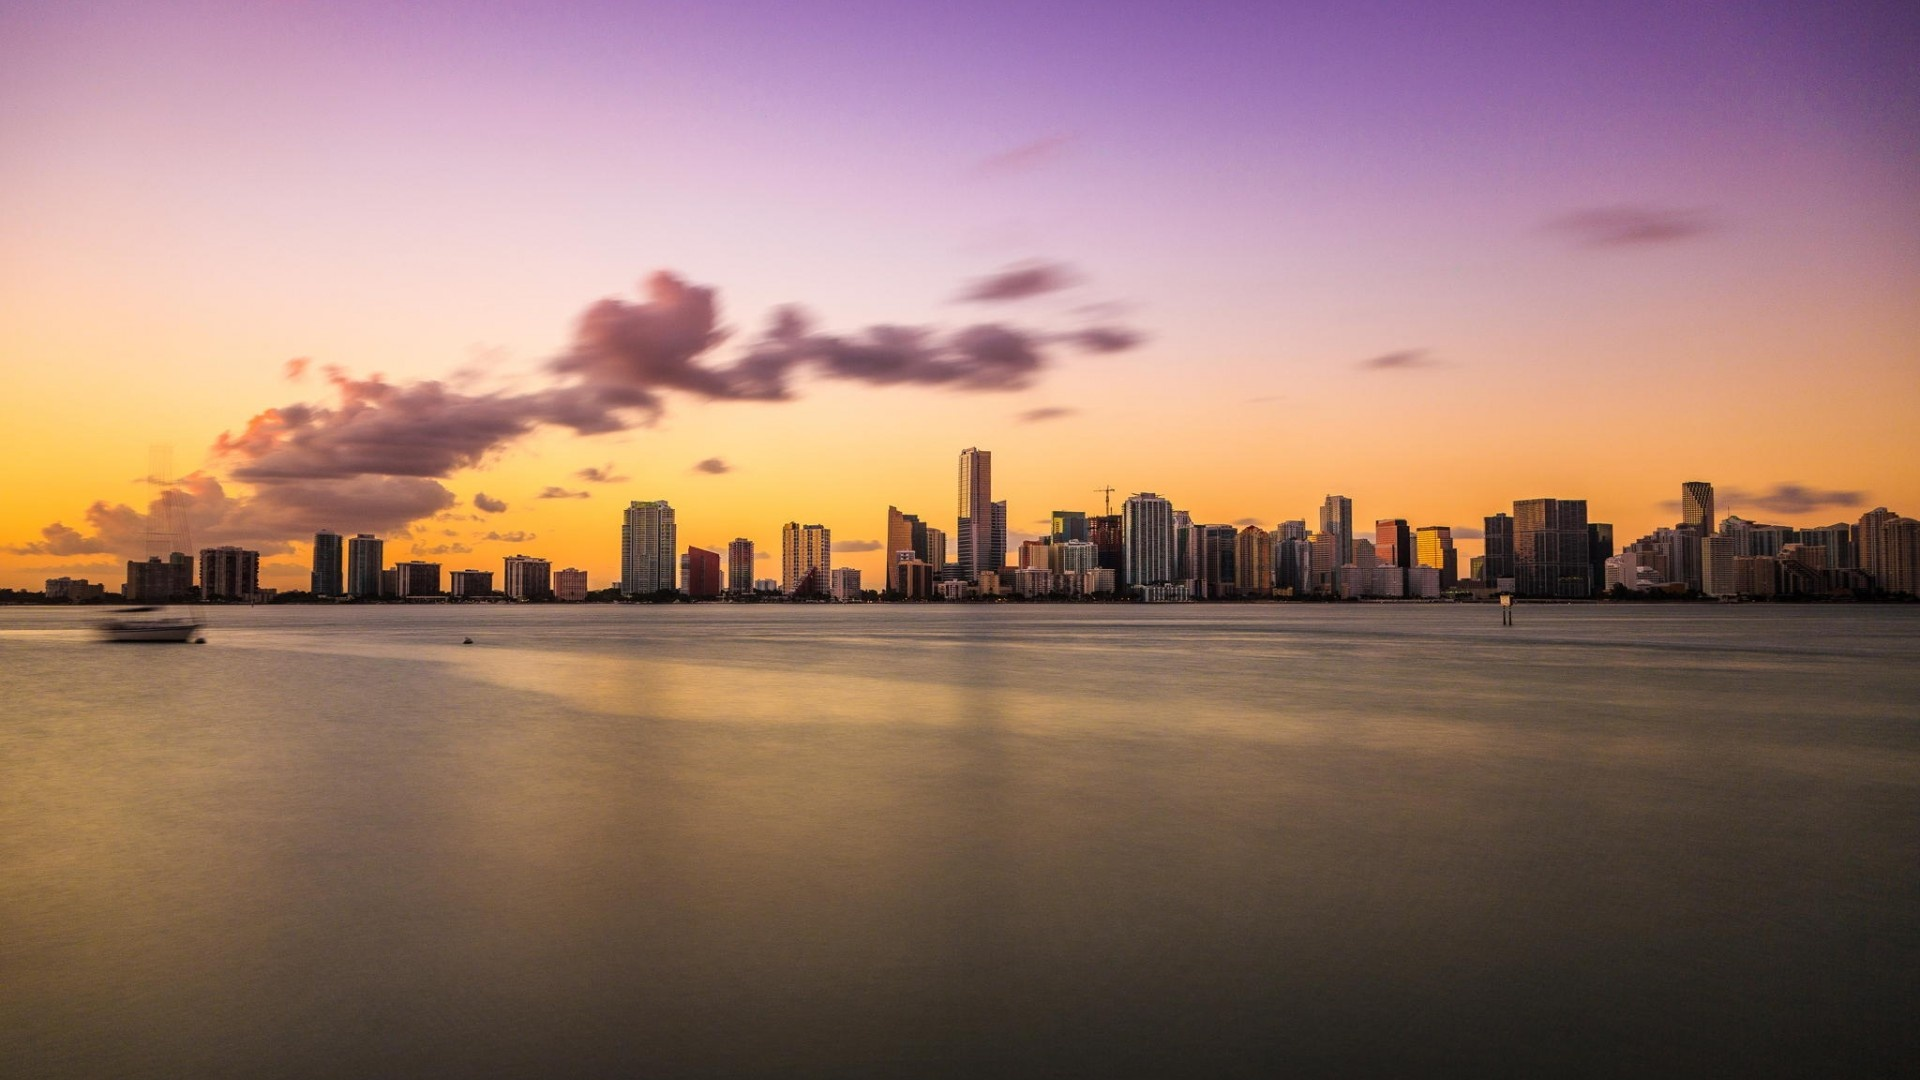 Os X Wallpapers Hd Miami Evening Sunset Ocean Wallpapers 1920x1080 365696